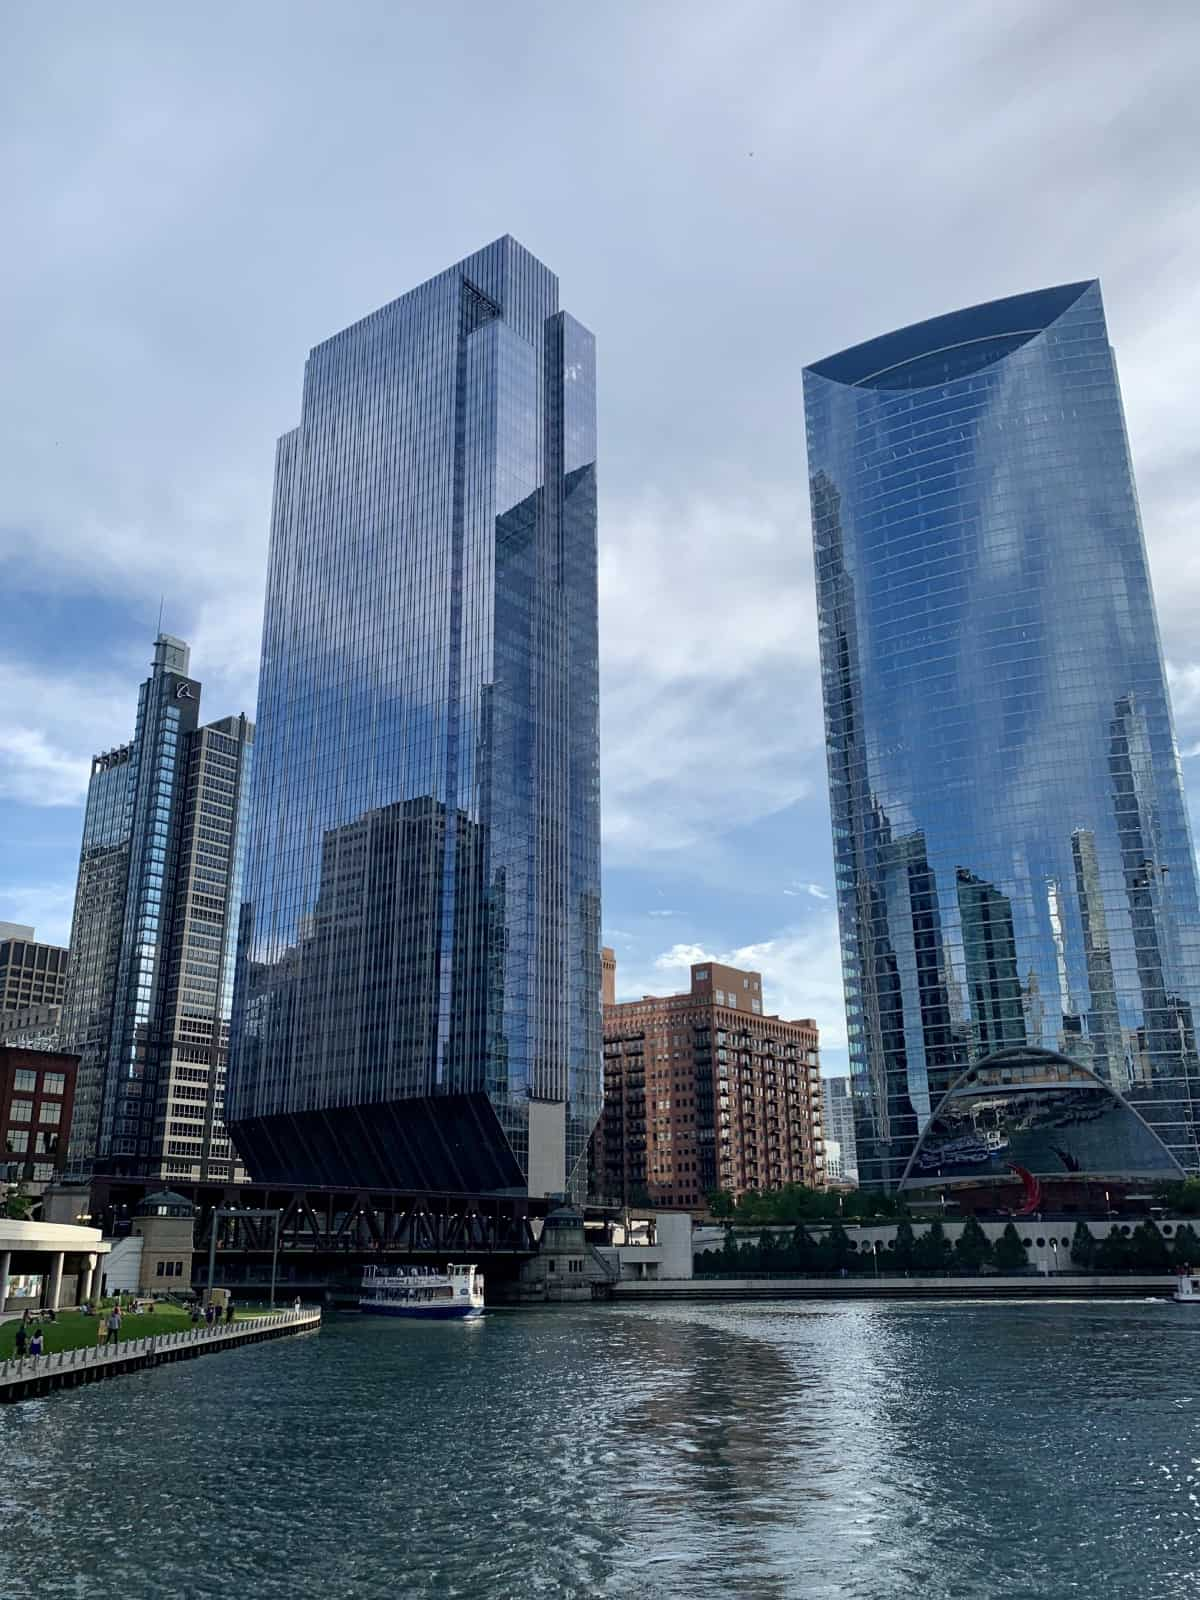 A Detailed First-Timer's Guide to Chicago | If you're planning a trip to Chicago (Illinois, USA), this super in-depth post of what to do in Chicago, where to stay, places to eat & drink, & more tips has got you covered. How to plan the best trip to Chicago, Chicago hotel recommendations, US travel tips. Chicago travel tips for the Windy City! #chicago #illinois #ustravel #windycity #cityguide